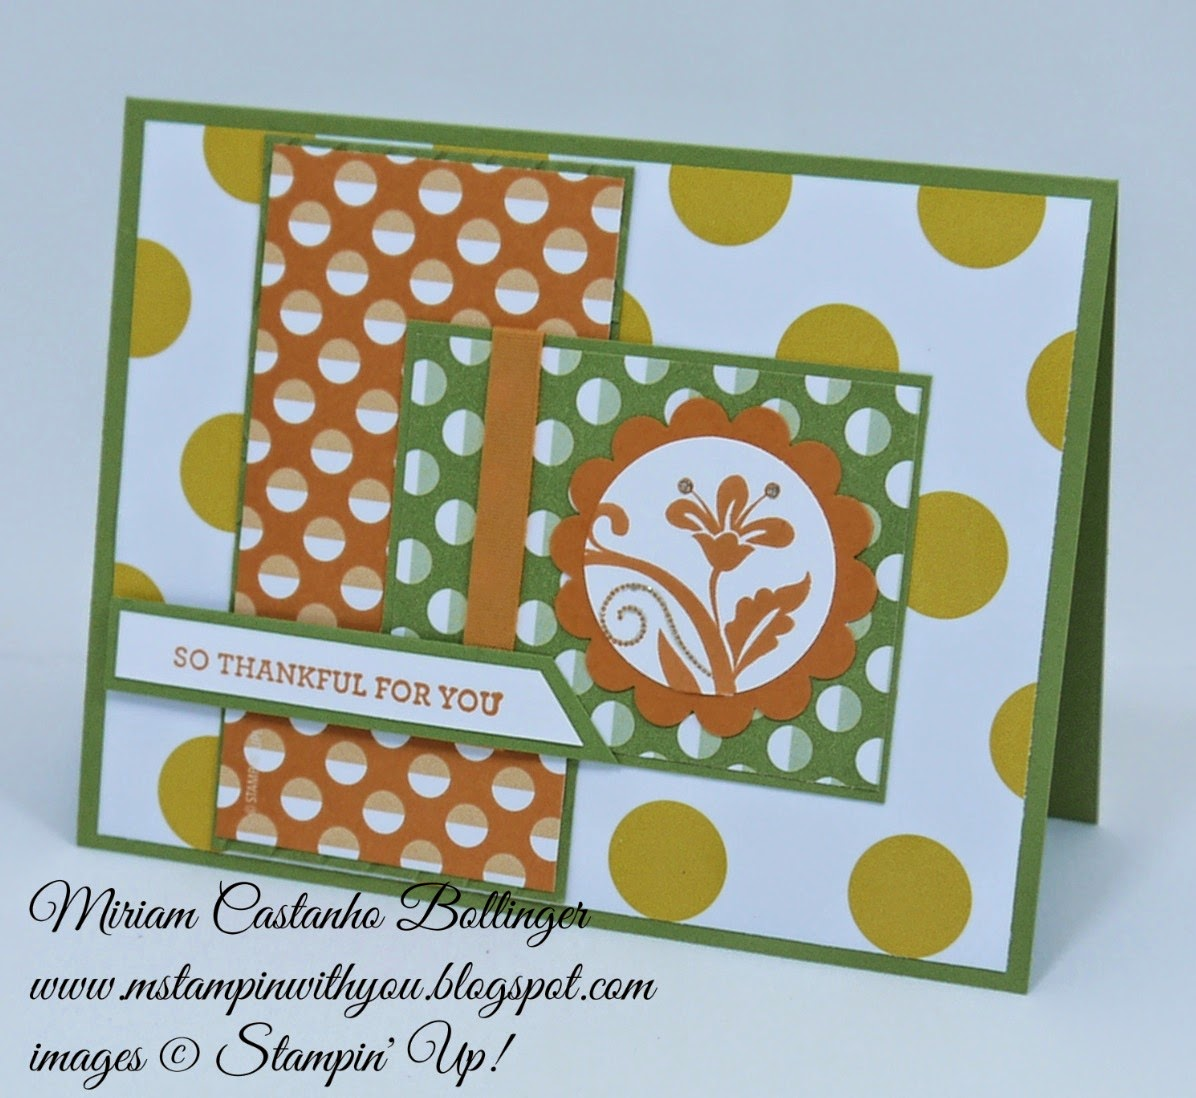 Miriam Castanho Bollinger, mstampinwithyou, stampin up, demosntrator, mm372, ppa227, flower pot dsp, sweet taffy dsp, flowering flourishes, I like you stamp set, scallop circle punch, su